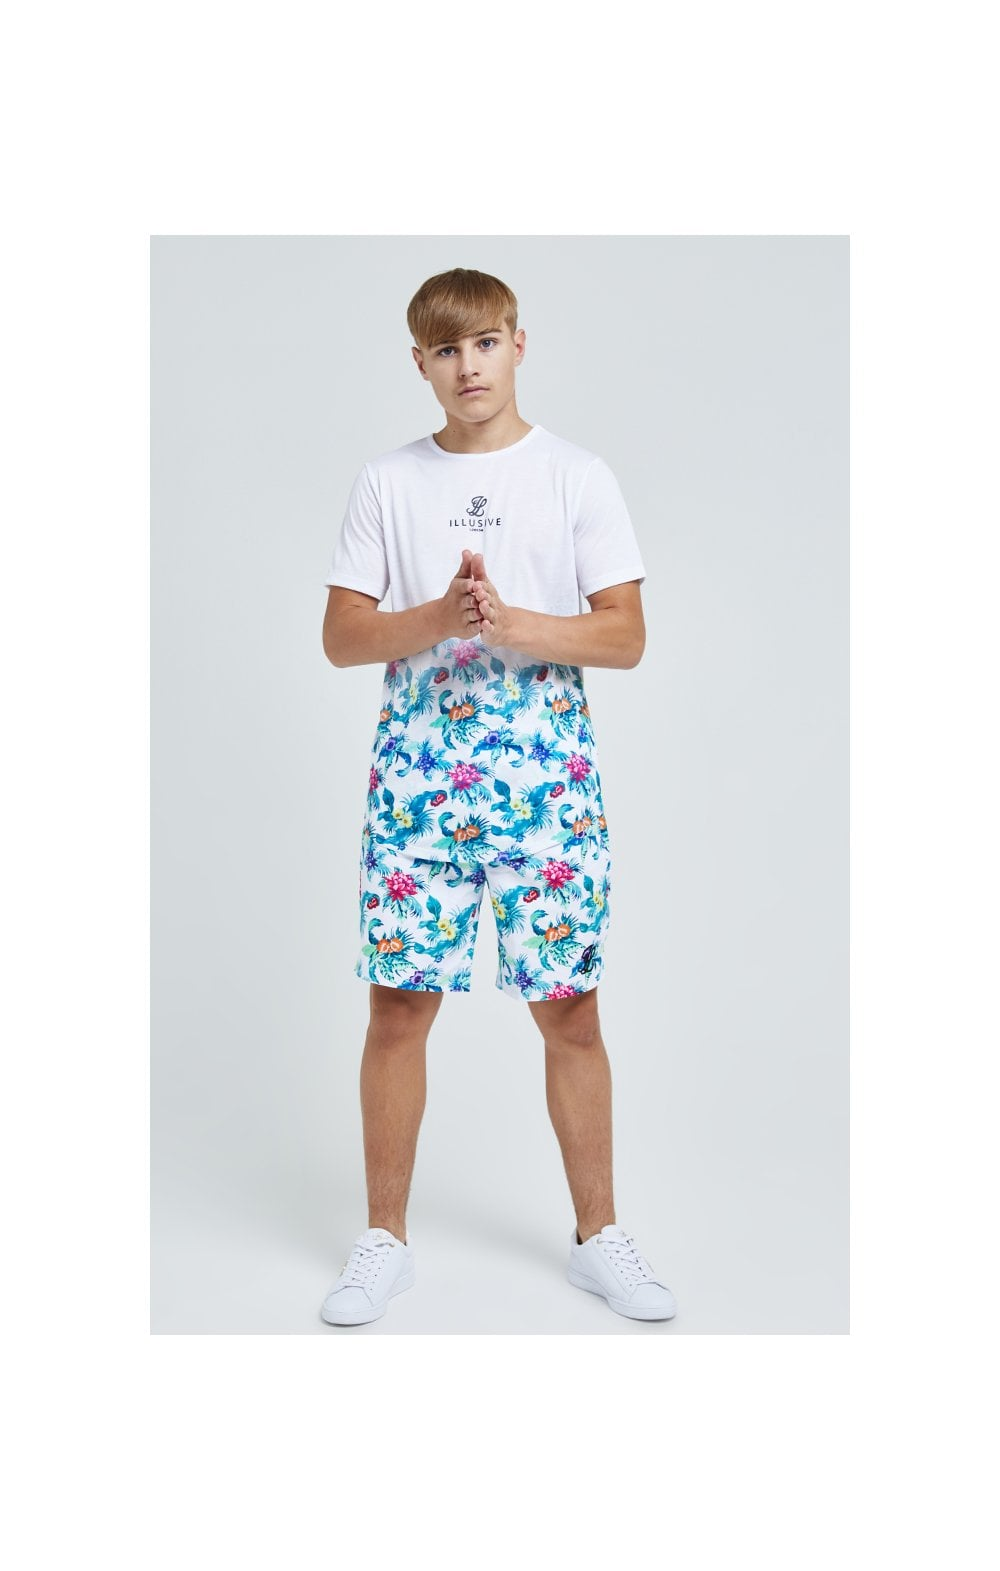 Load image into Gallery viewer, Illusive London Swim Shorts - White & Floral